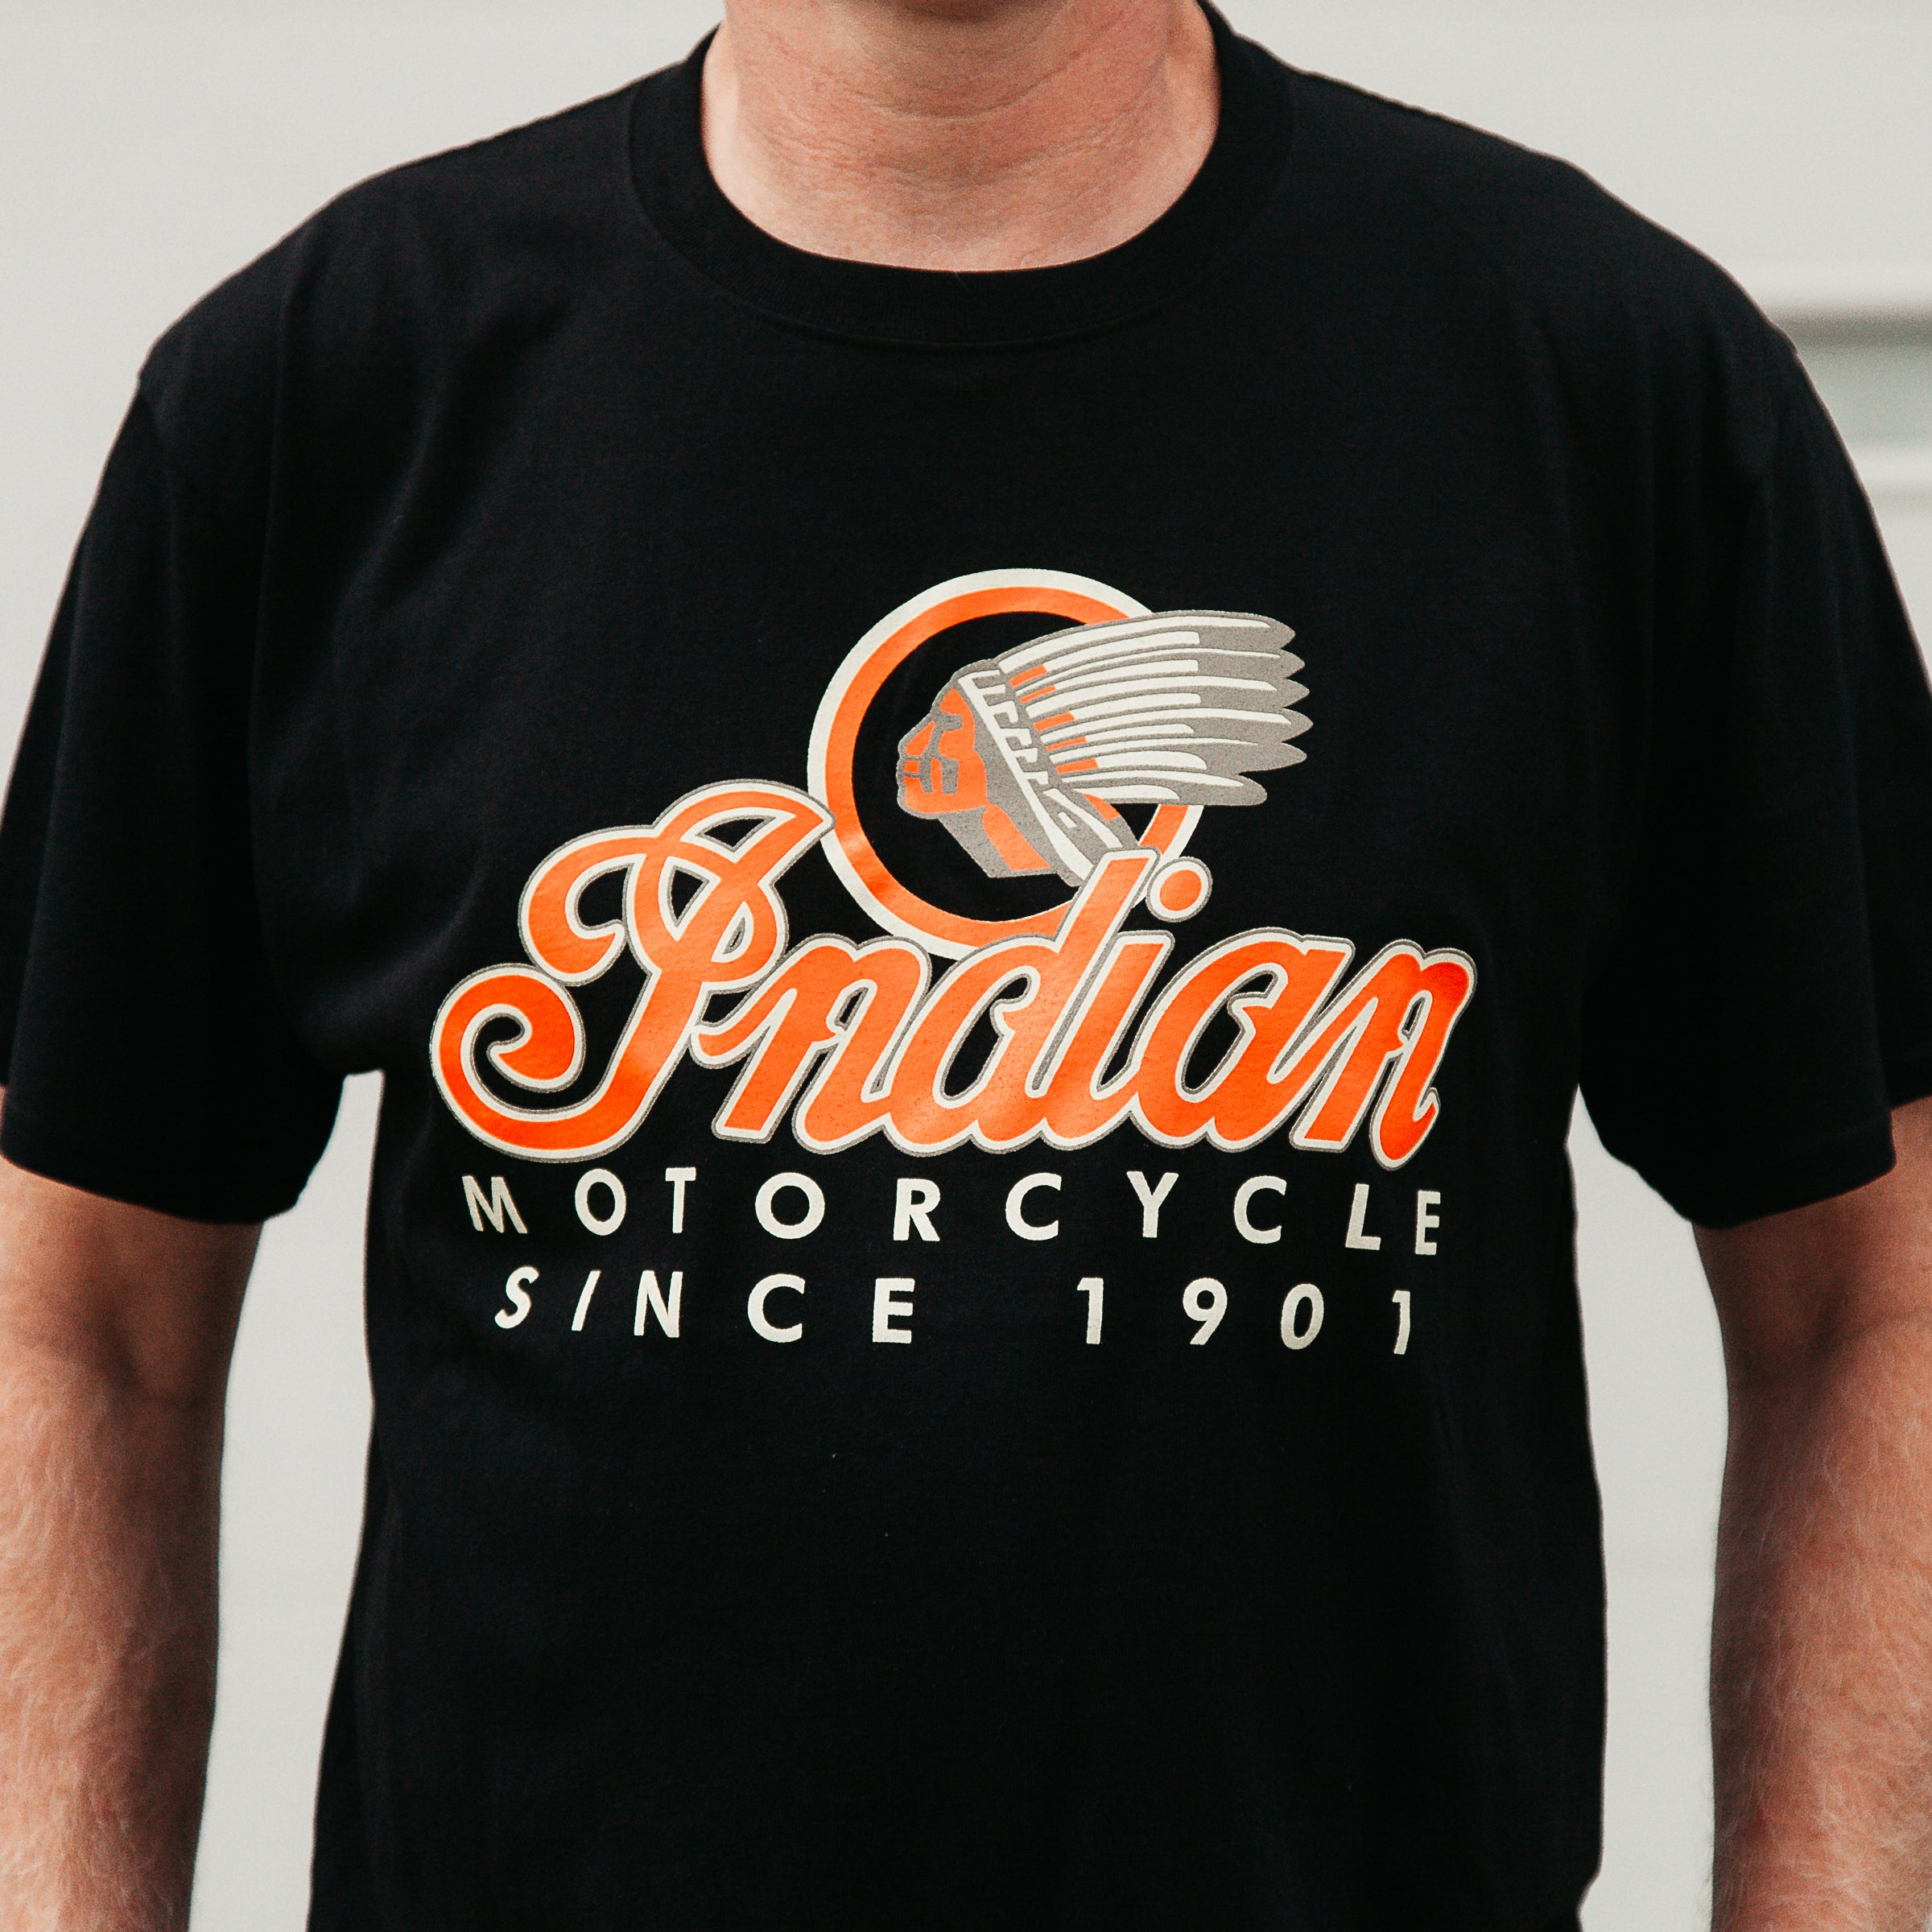 Dreamcycle Motorcycle Museum |  Closeup photo of Indian Motorcycle Tshirt in lifestyle environment.